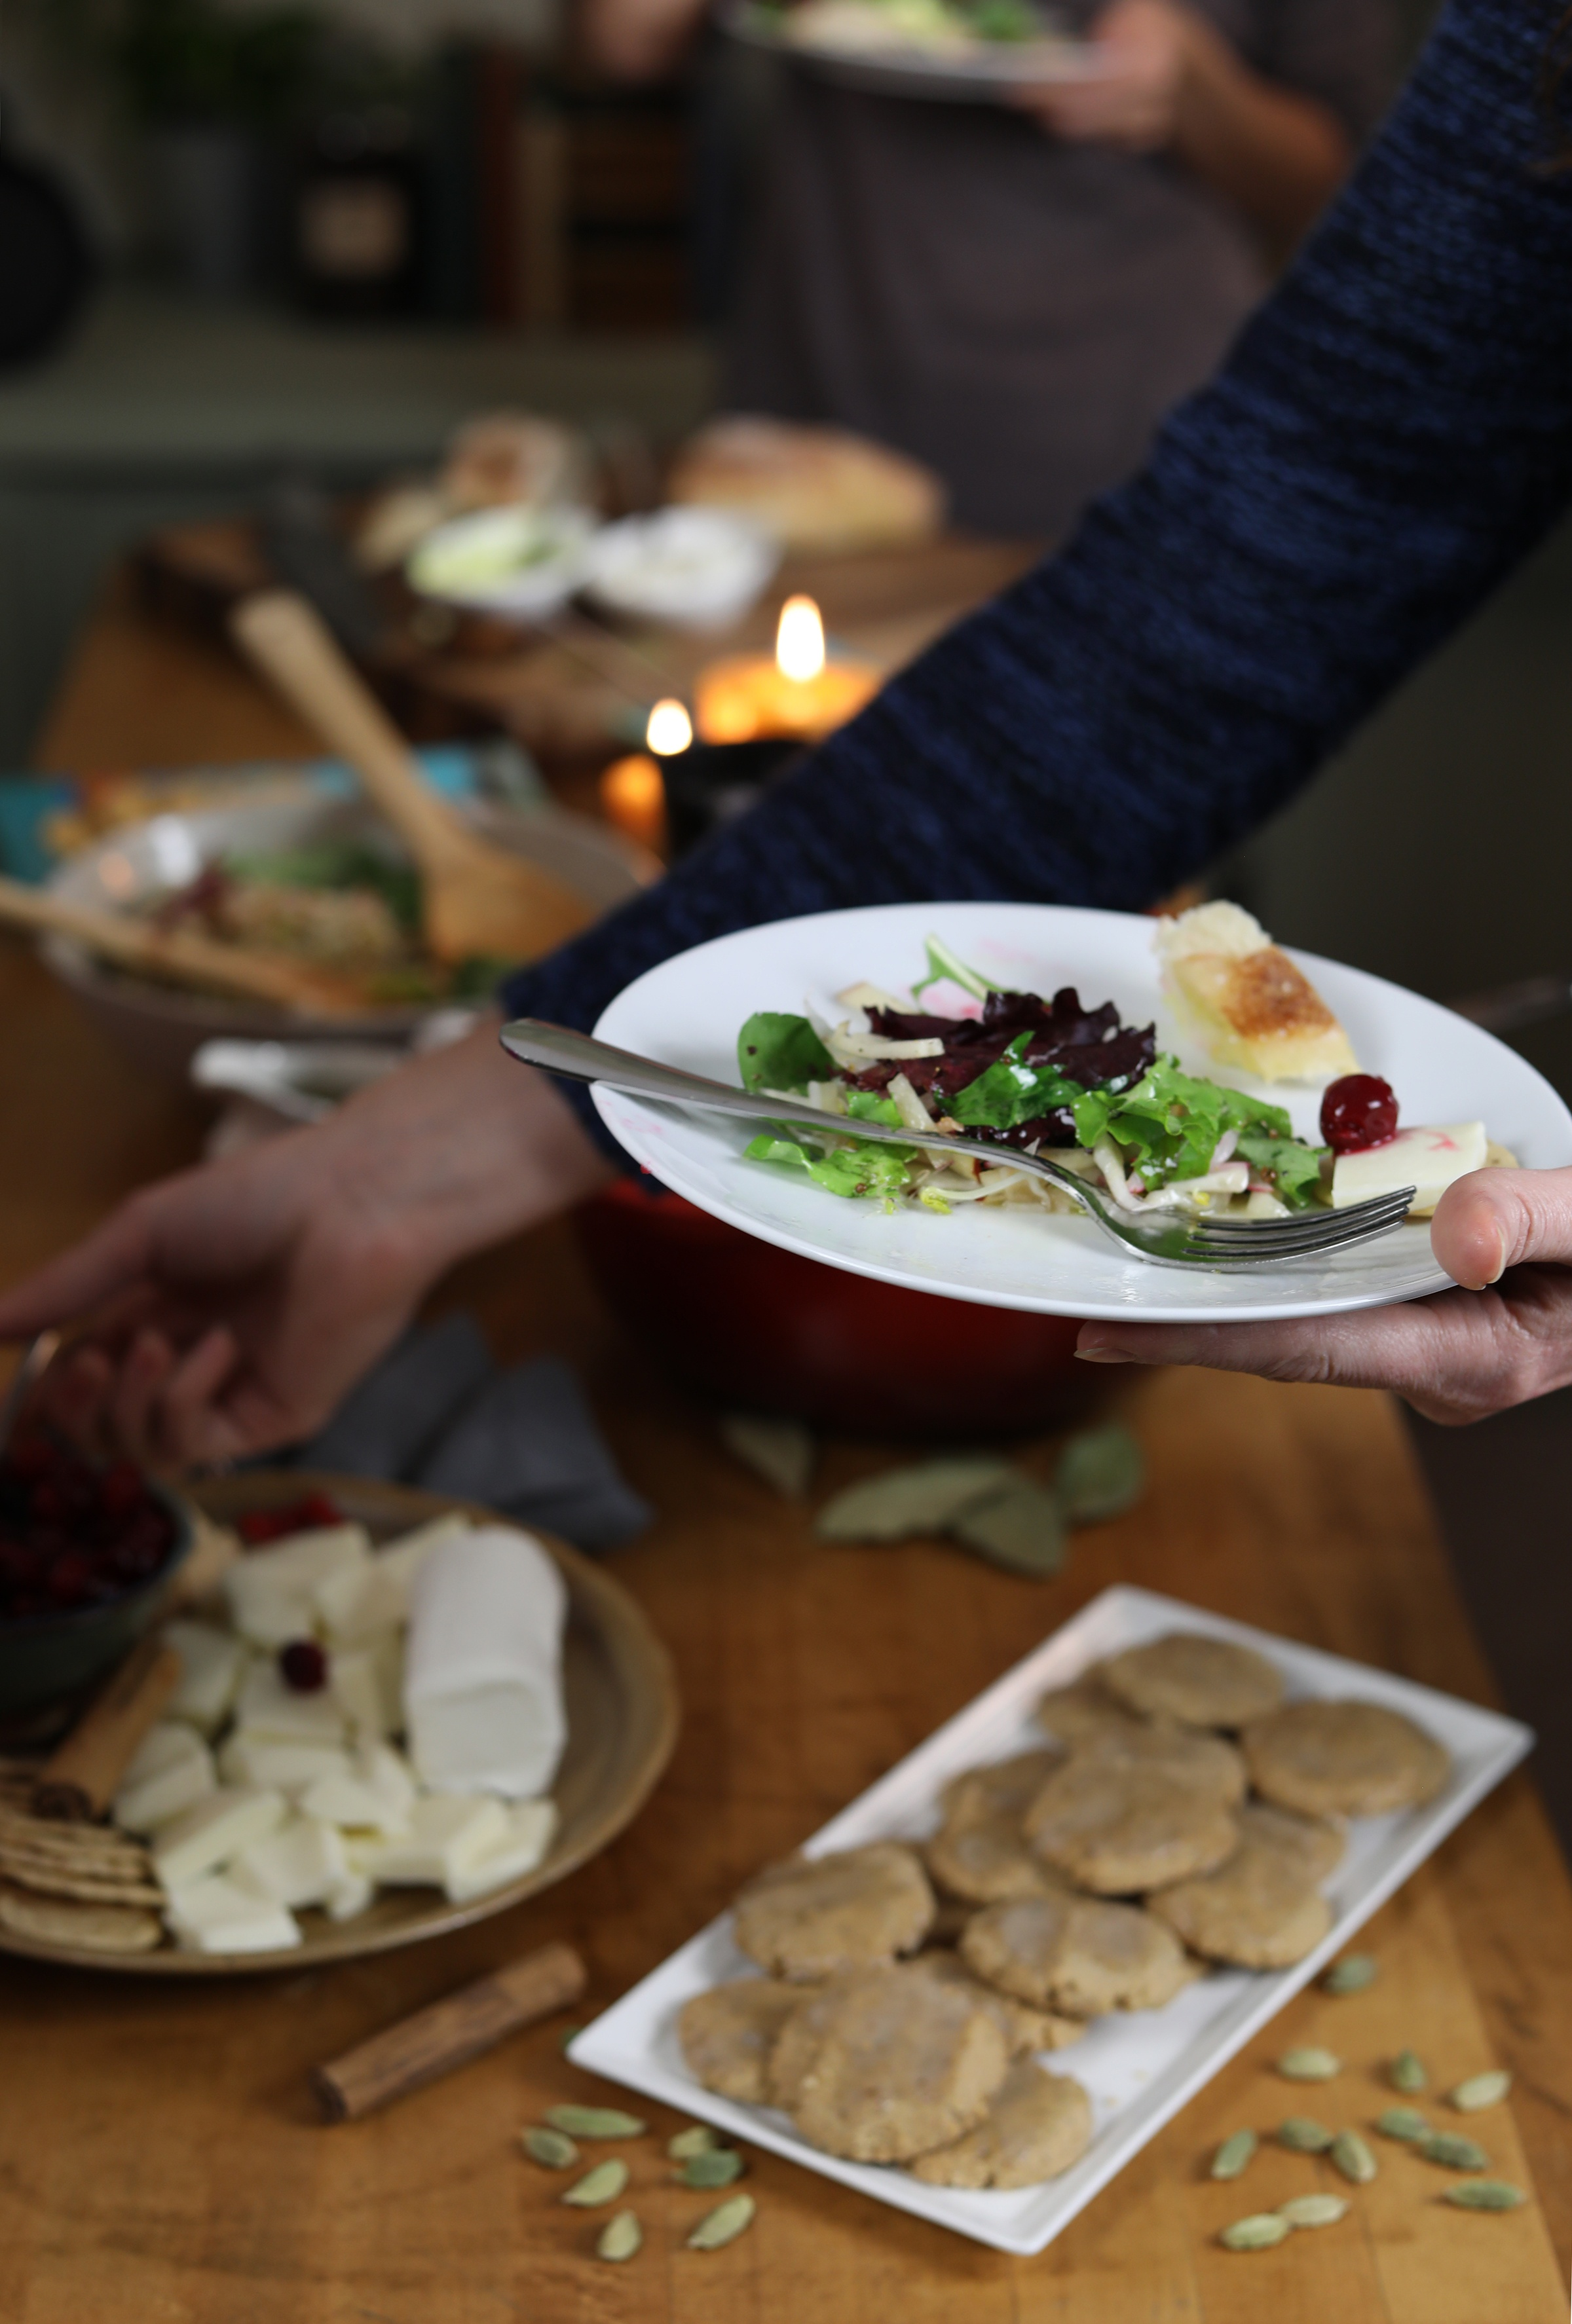 Hand holding fresh salad, reaching for cranberries  and cheese, hovering over group meal table